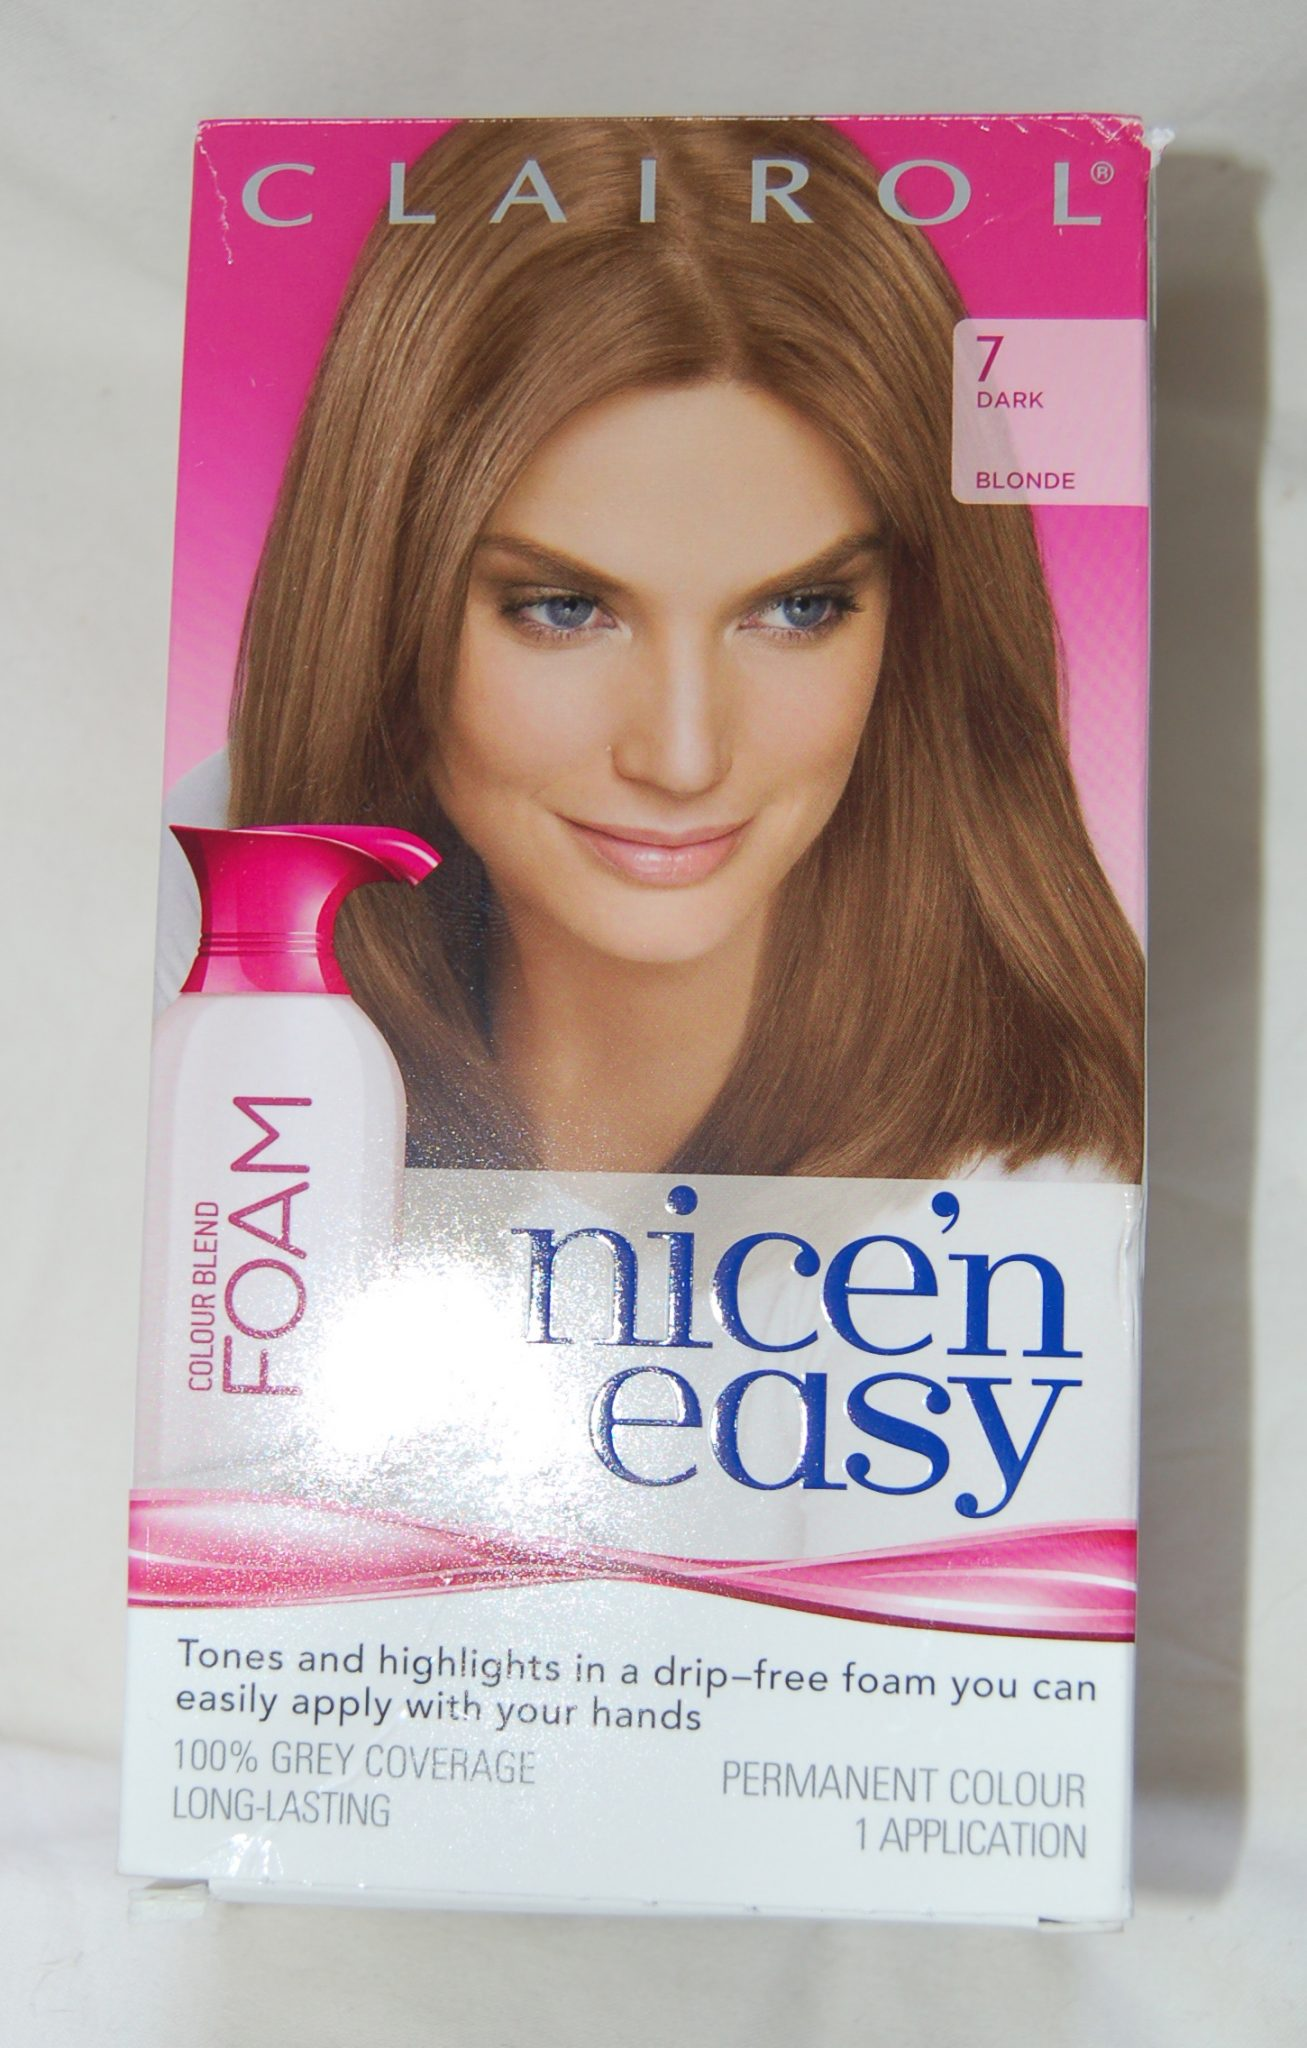 Review Of Clairol Nicen Easy Colour Blend Foam In 7 Dark Blonde And